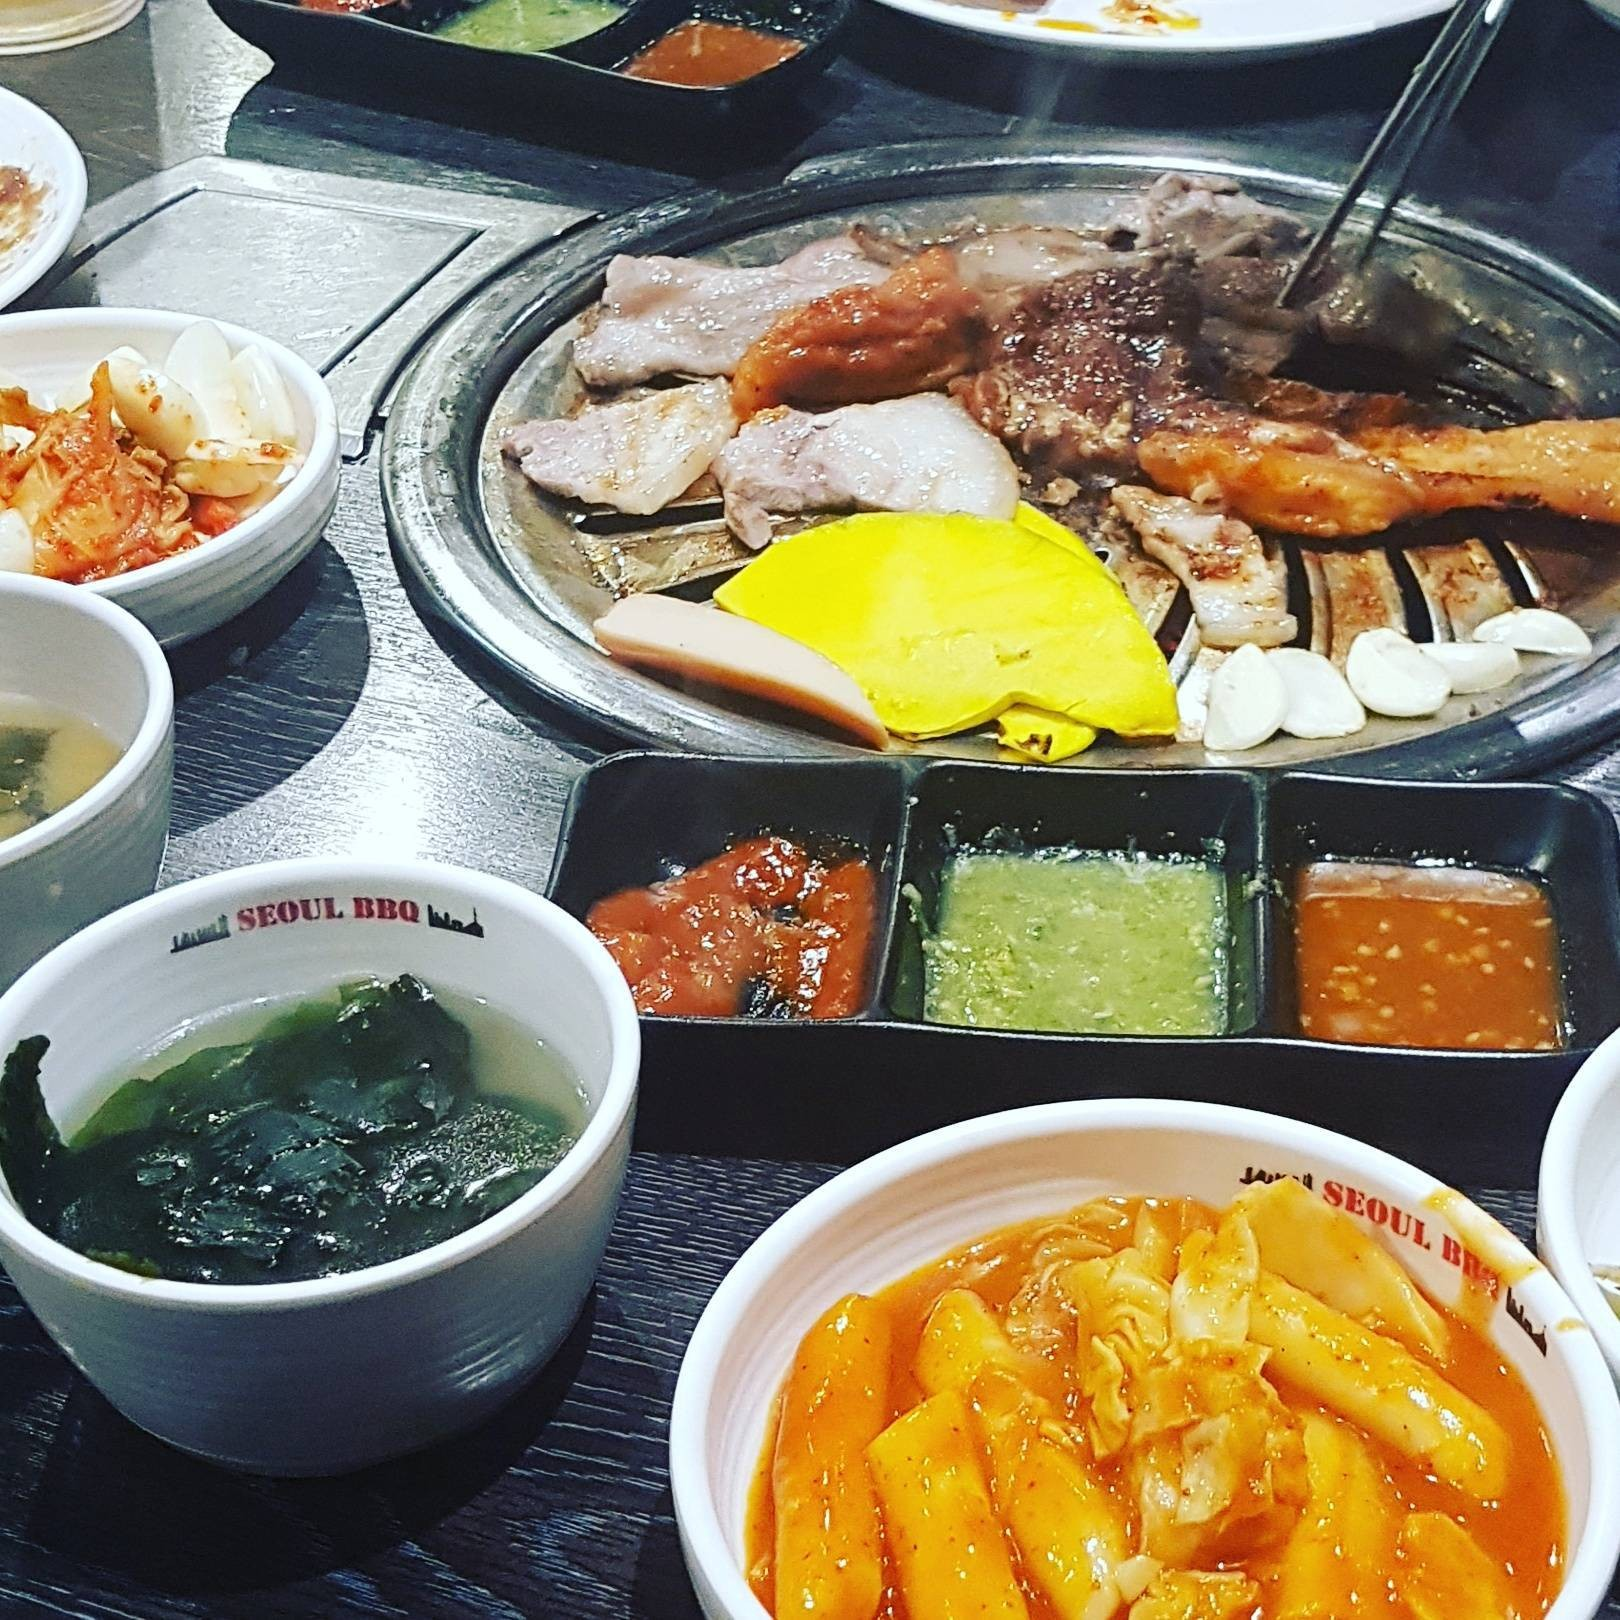 Seoul BBQ Korean Buffet Restaurant